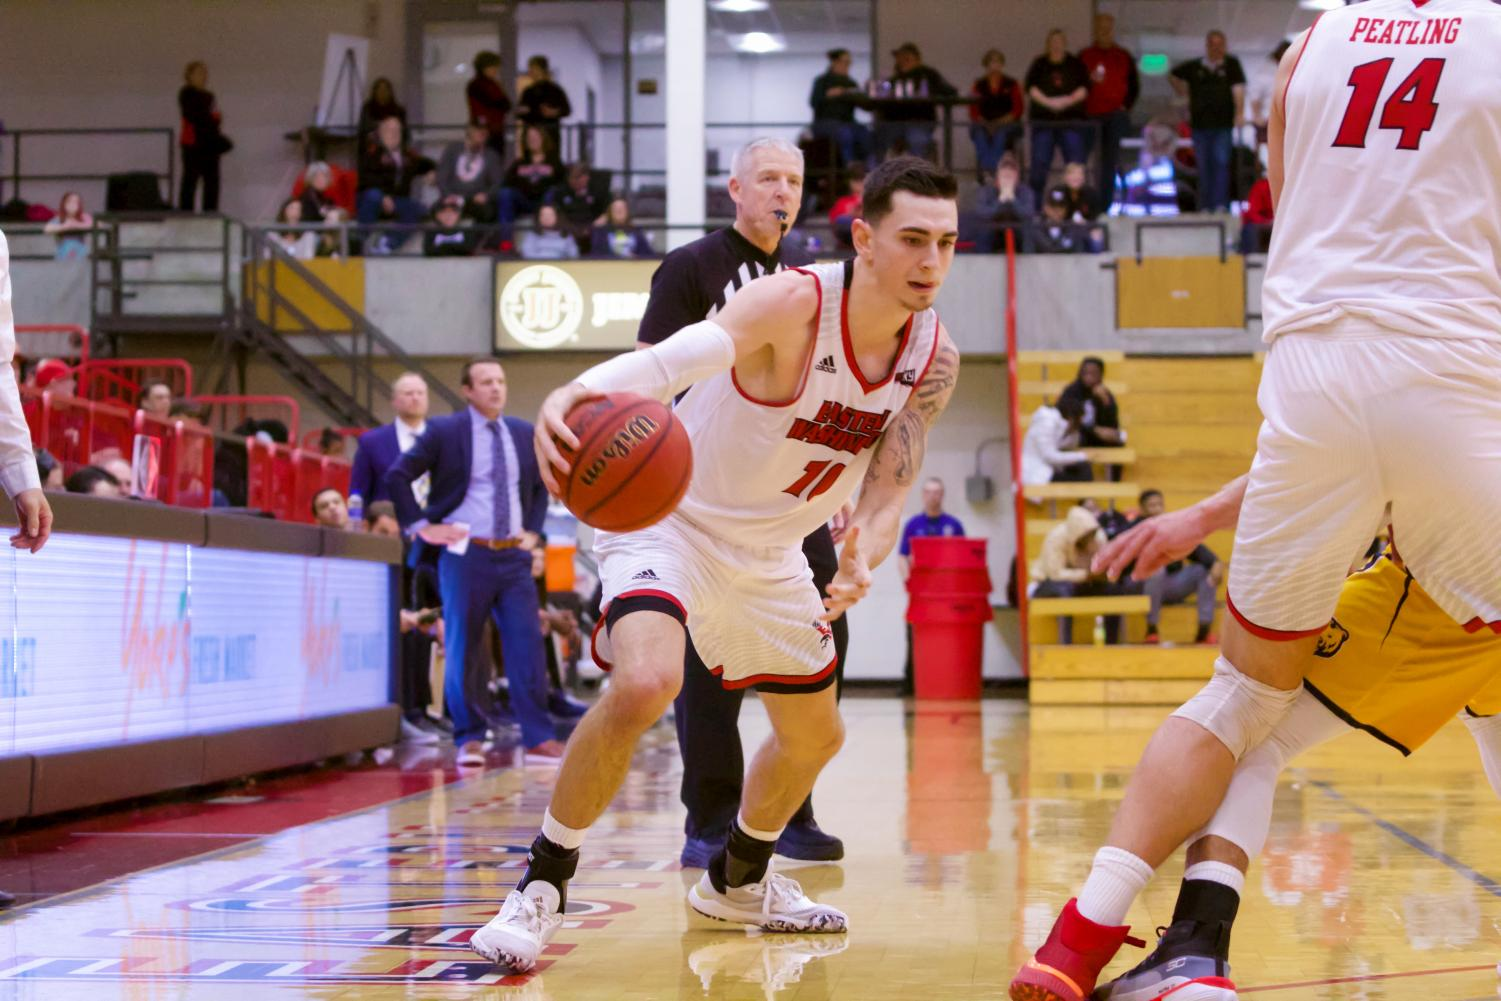 EWU junior guard Jacob Davison attacks the perimeter. Davison scored 20 points in EWU's 89-84 victory over Northern Colorado Monday.